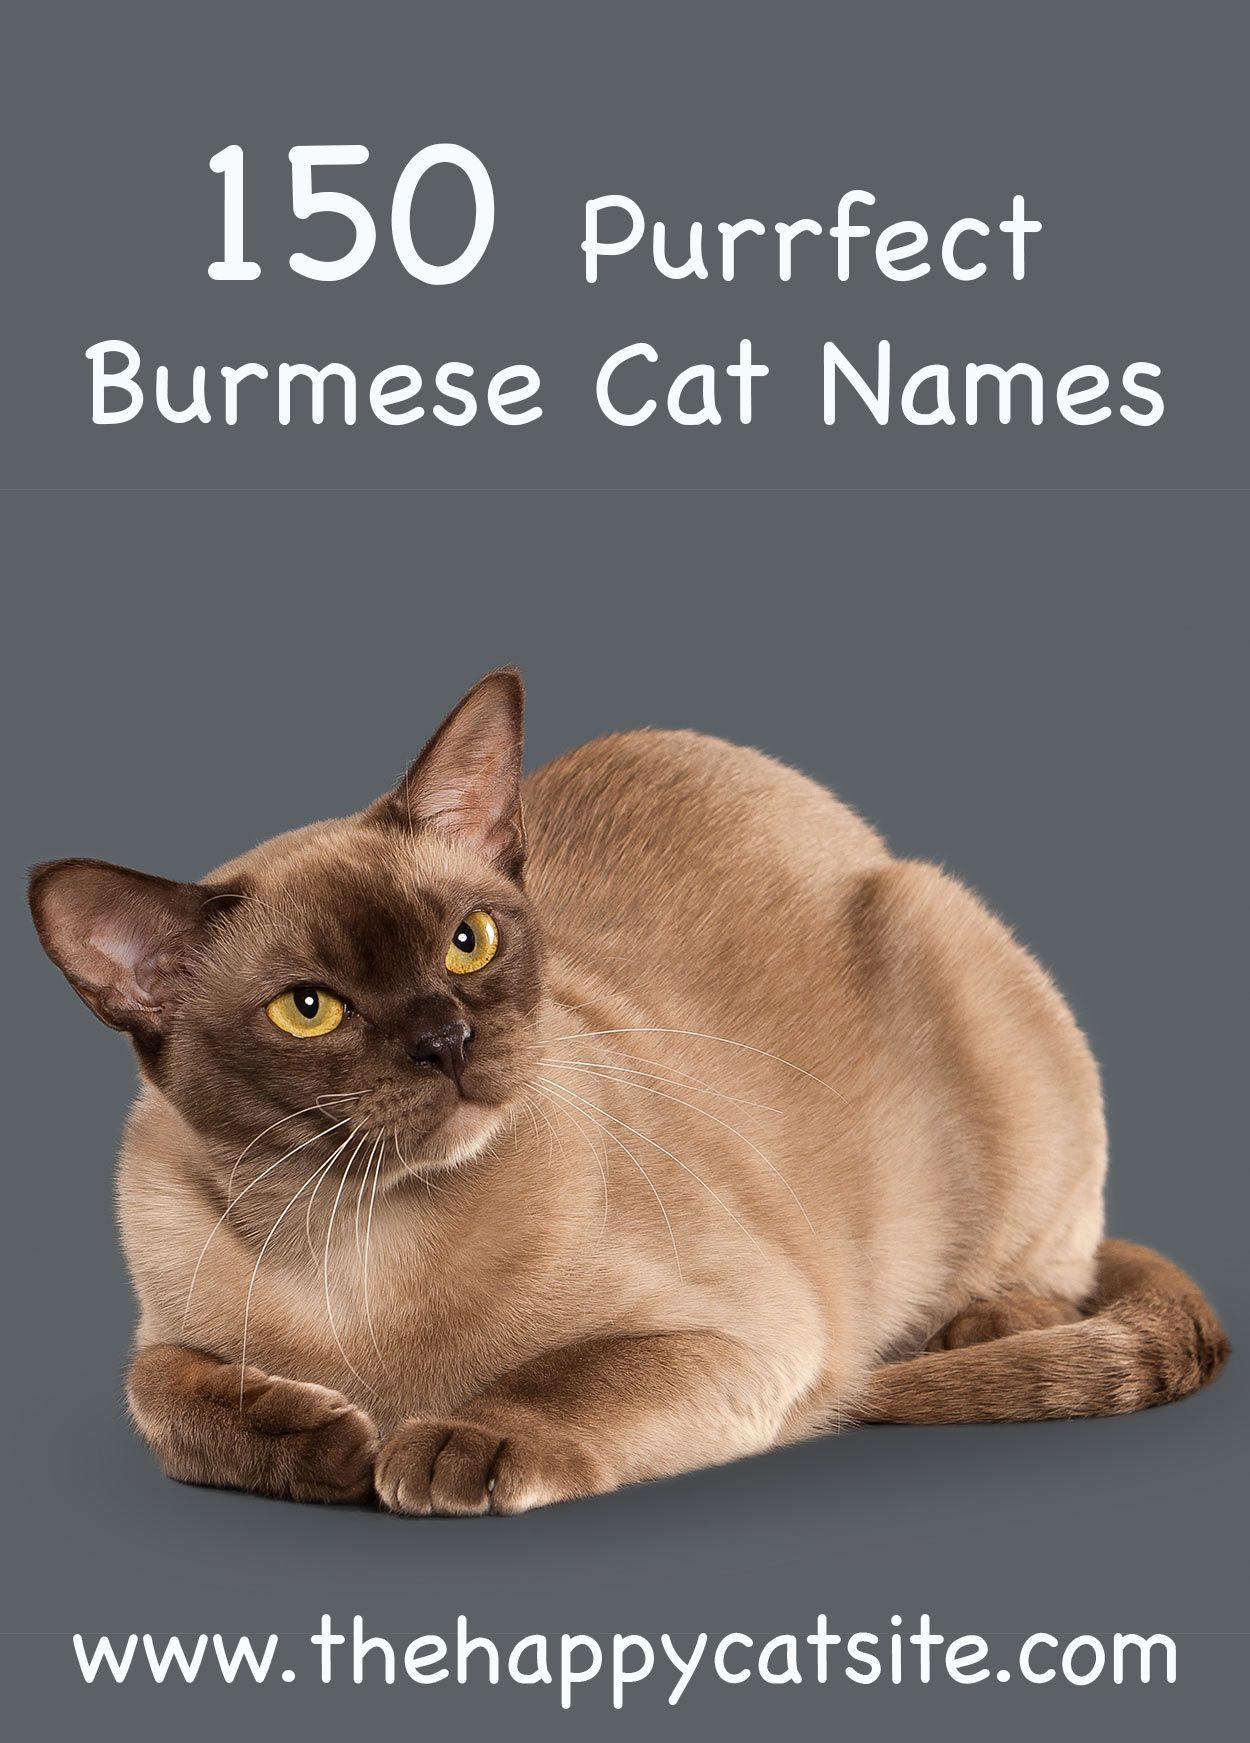 Burmese Cat Names Great Names To Call Your Cat Burmese Cat Cat Names Cute Cat Names